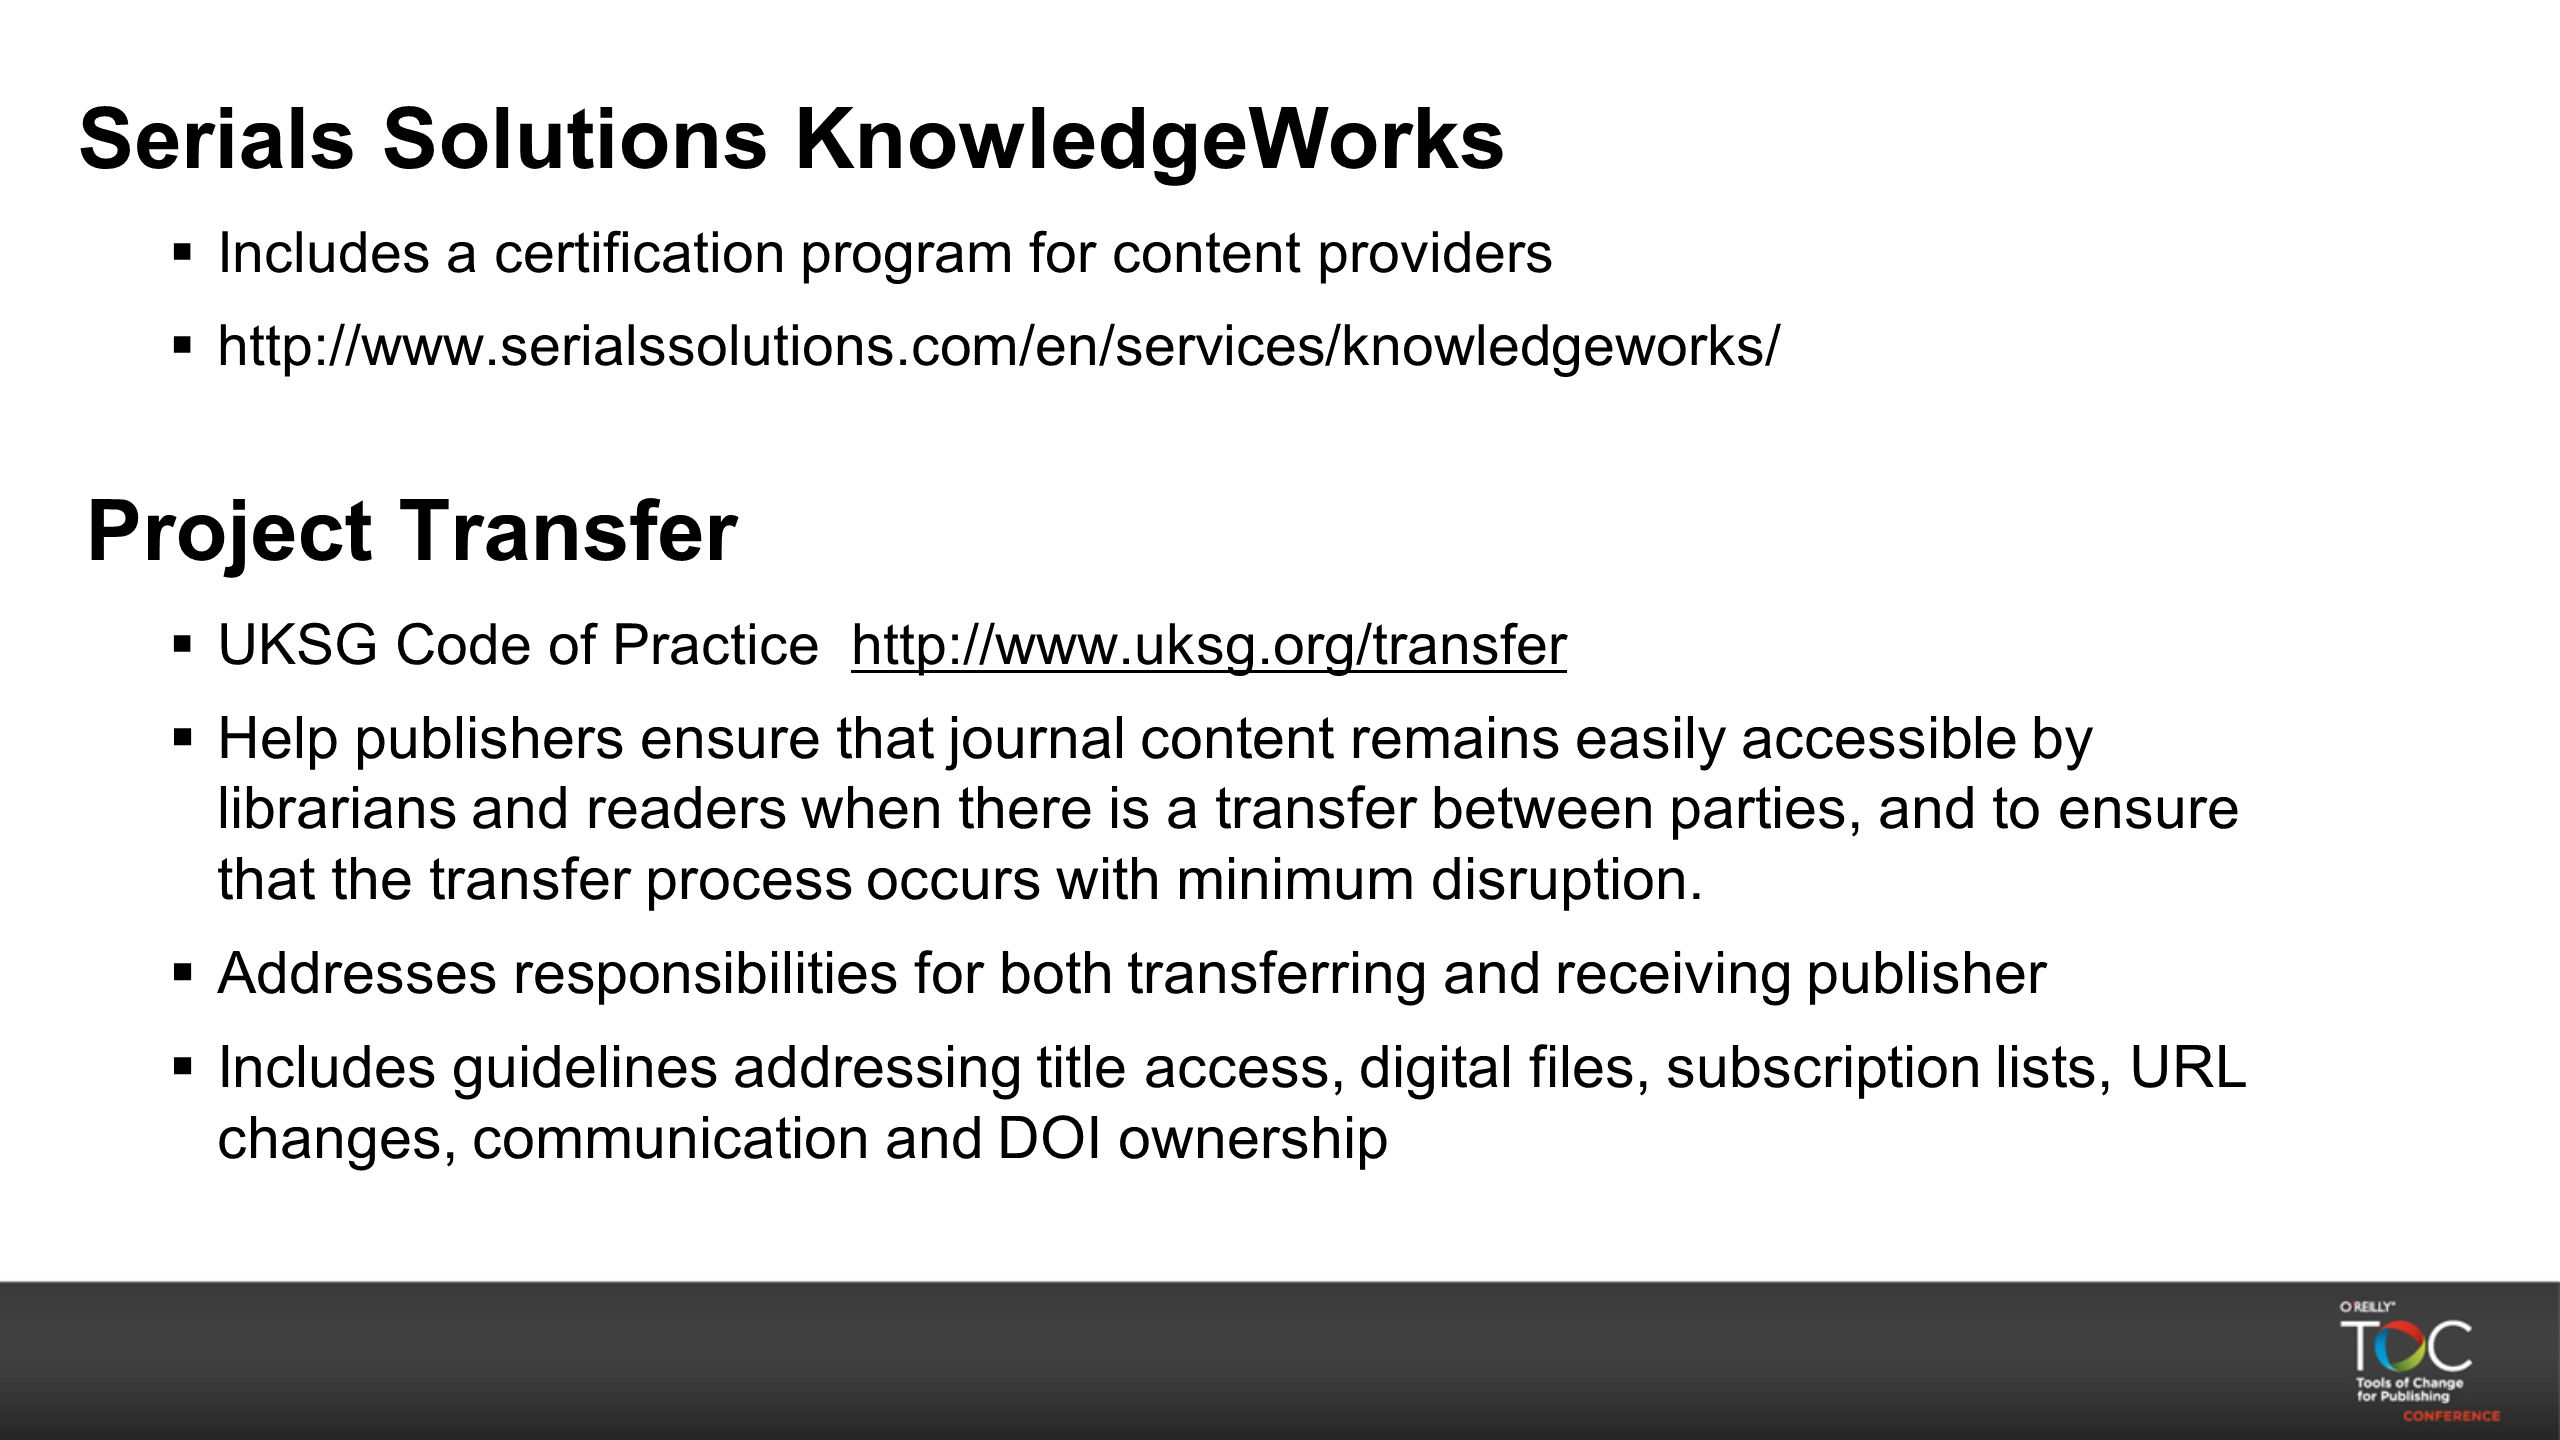 Serials Solutions KnowledgeWorks  Includes a certification program for content providers  http://www.serialssolutions.com/en/services/knowledgeworks